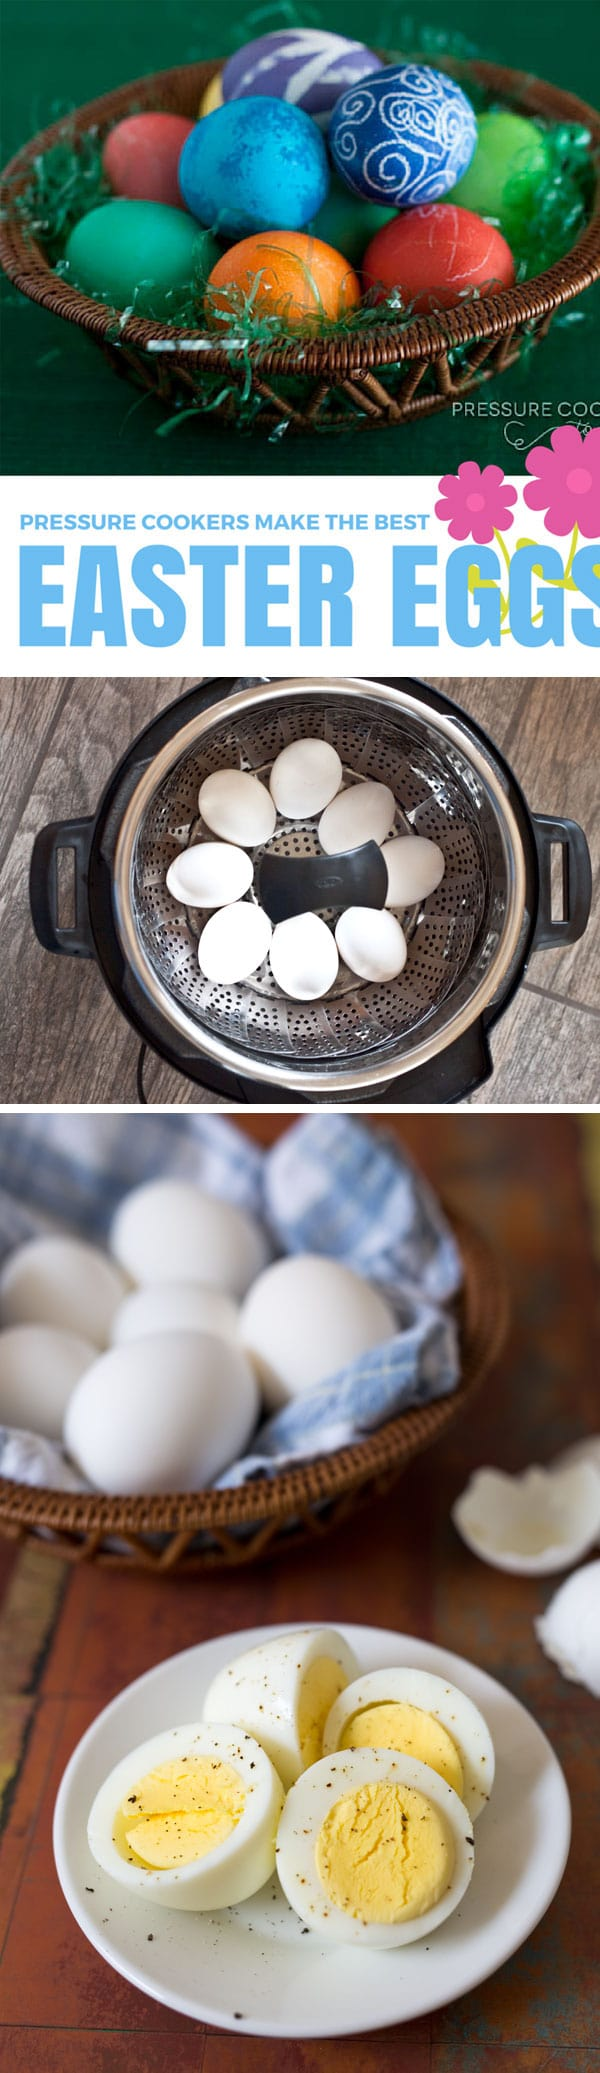 Hard Boiled Eggs For Easter In The Pressure Cooker (instant Pot)